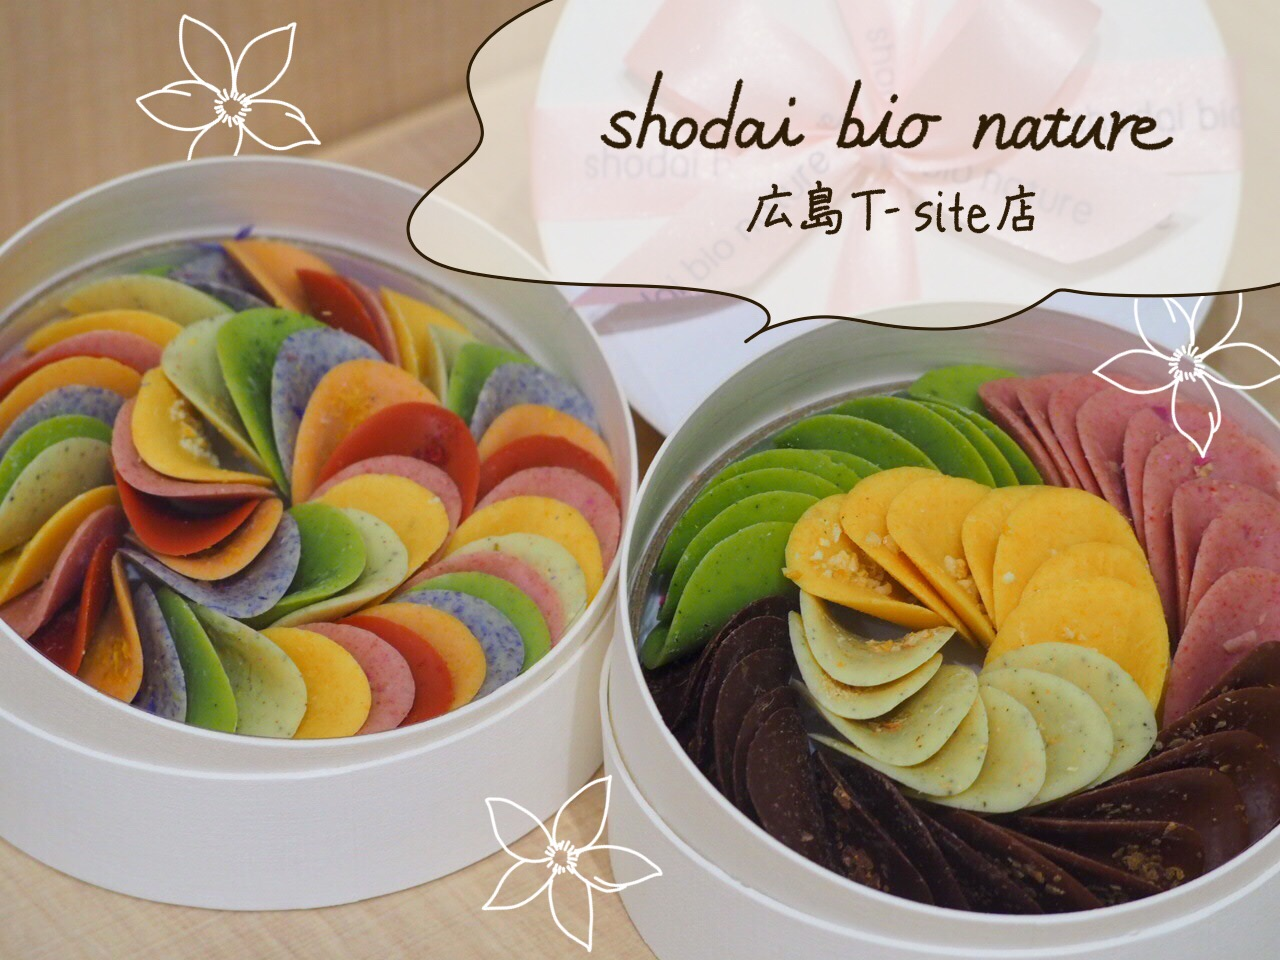 shodai bio nature 広島T-site店